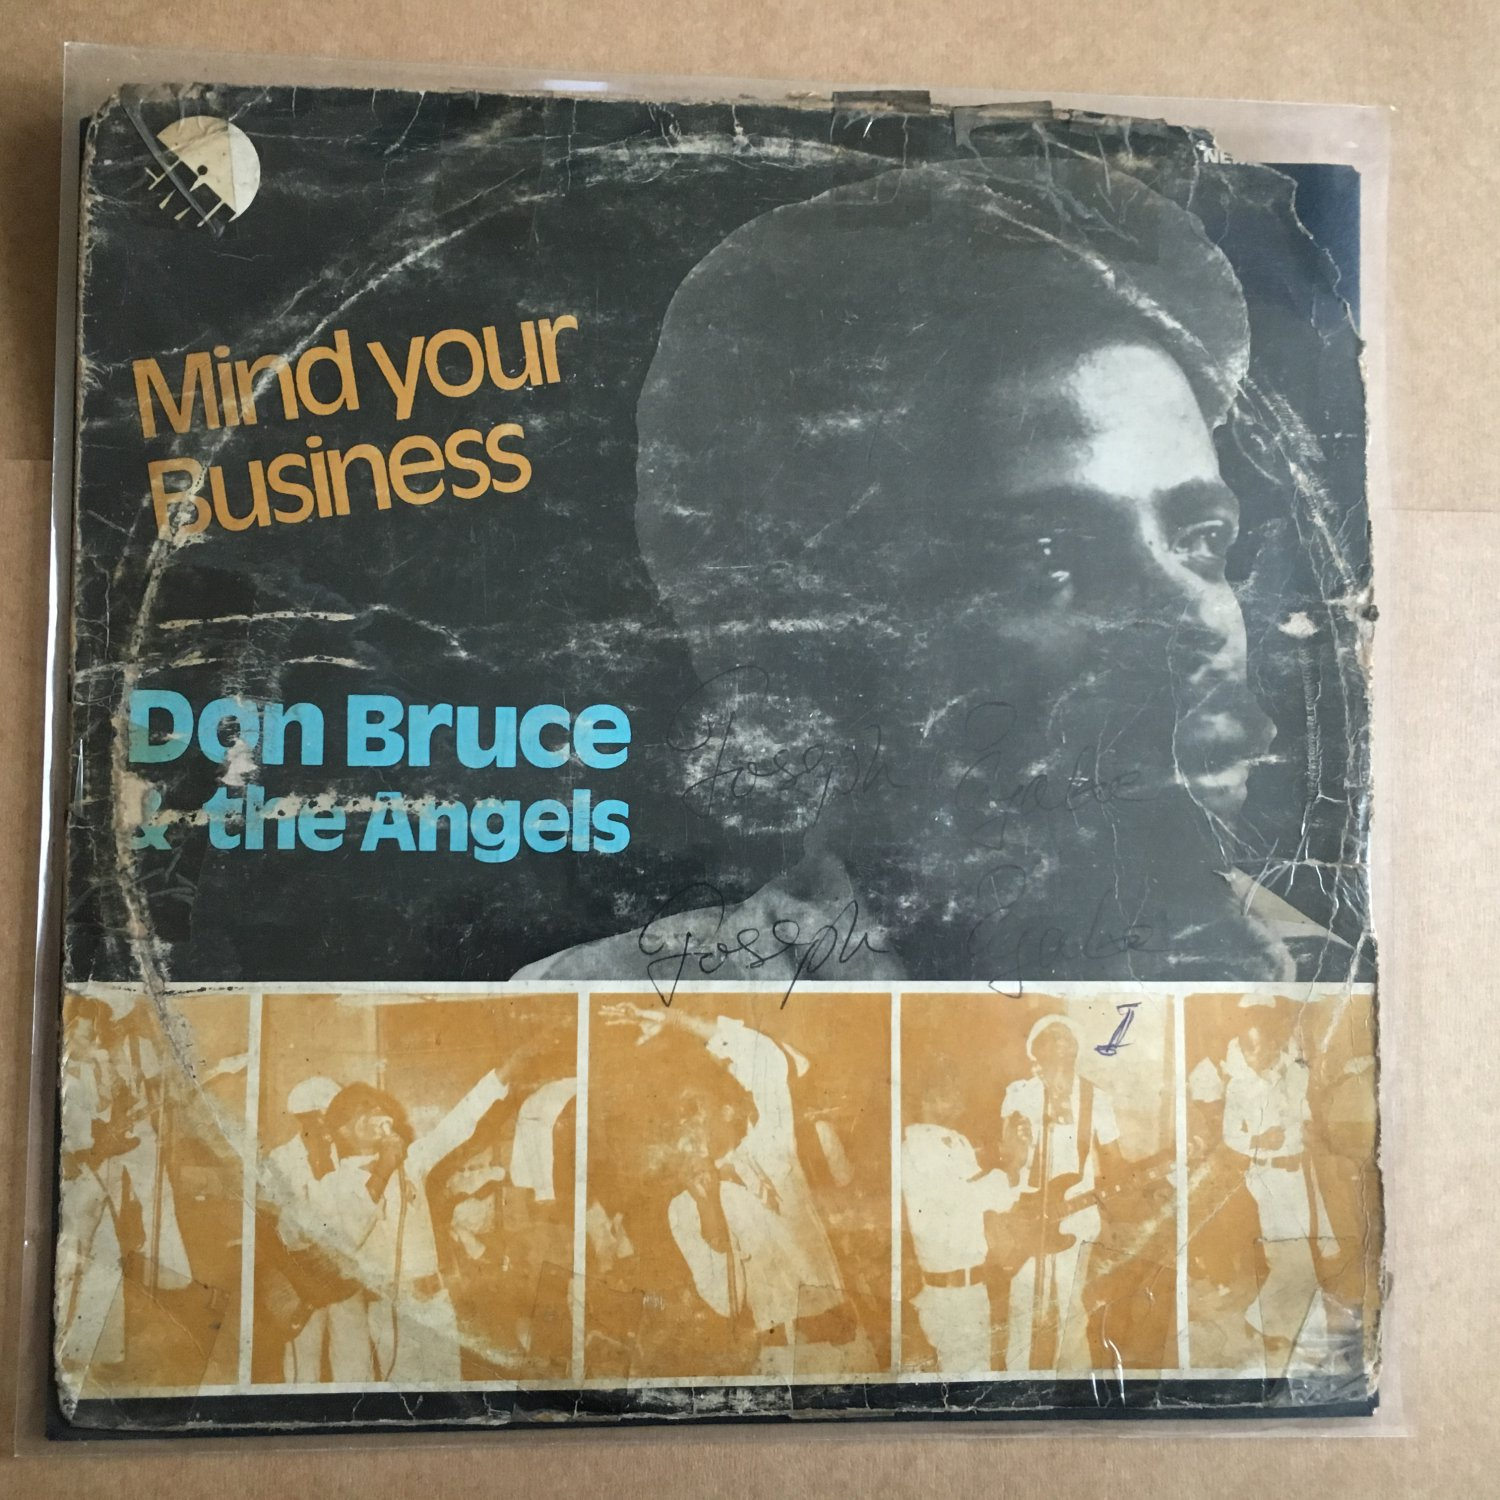 DON BRUCE & THE ANGELS LP mind your business NIGERIA AFRO FUNK REGGAE mp3 LISTE